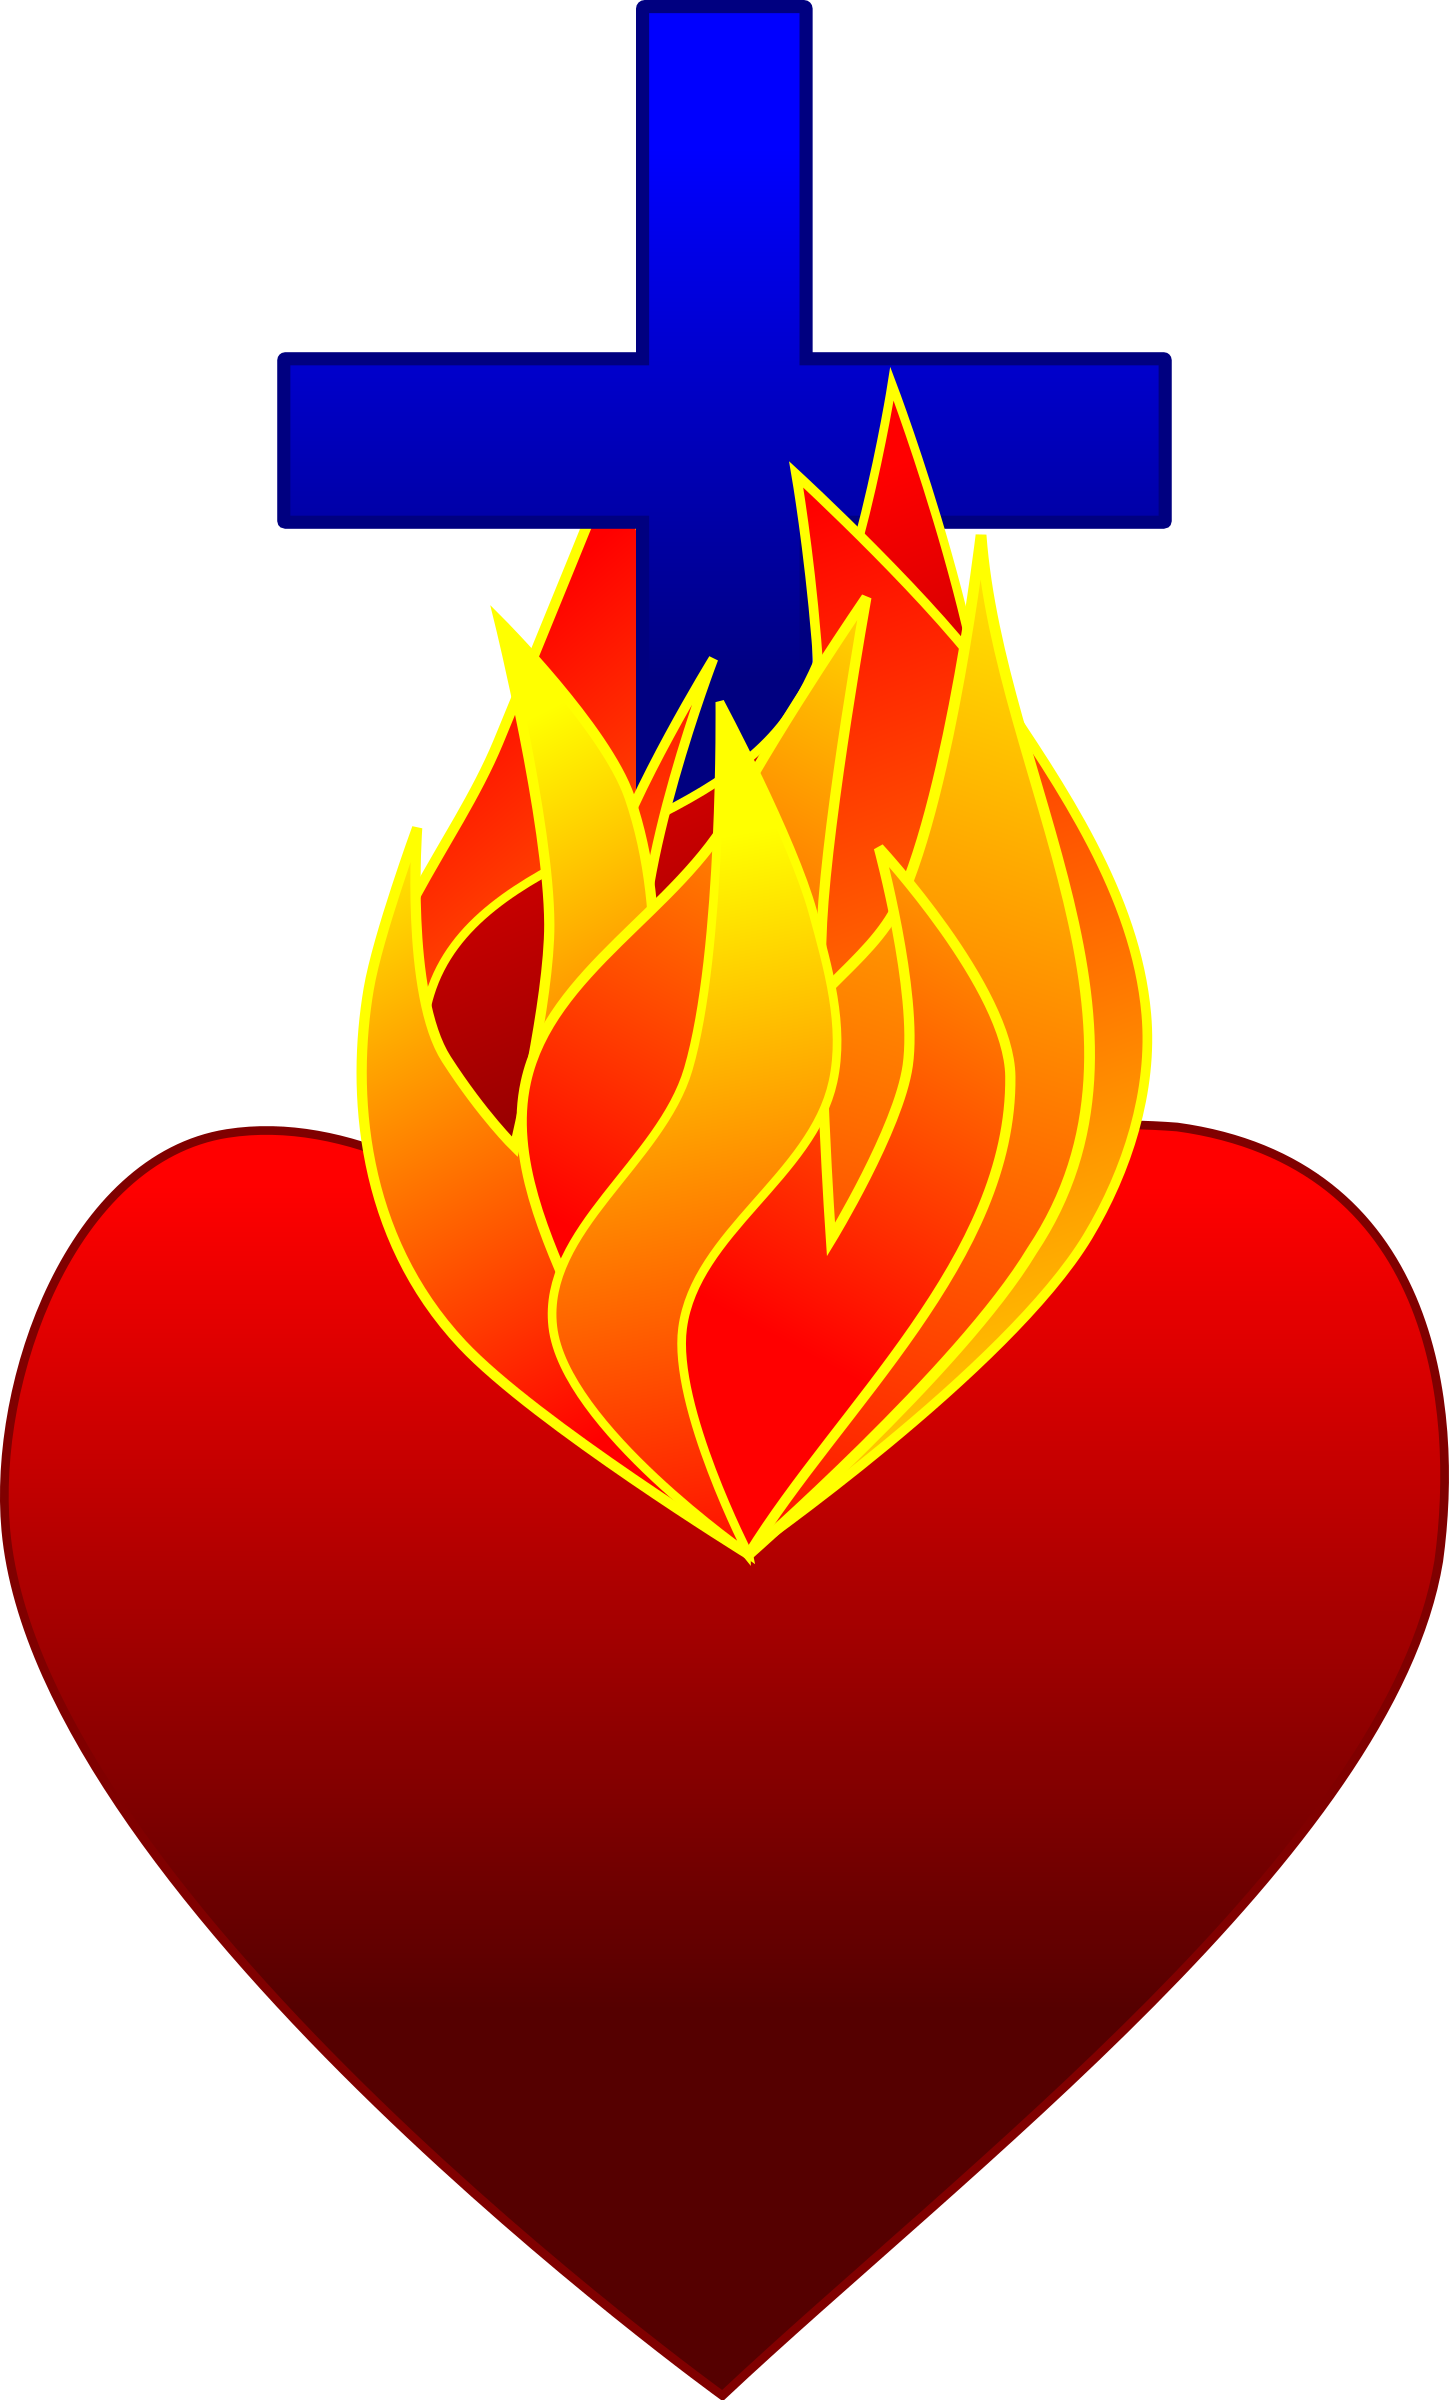 Clipart sacred heart library Heart On Fire Icons PNG - Free PNG and Icons Downloads library